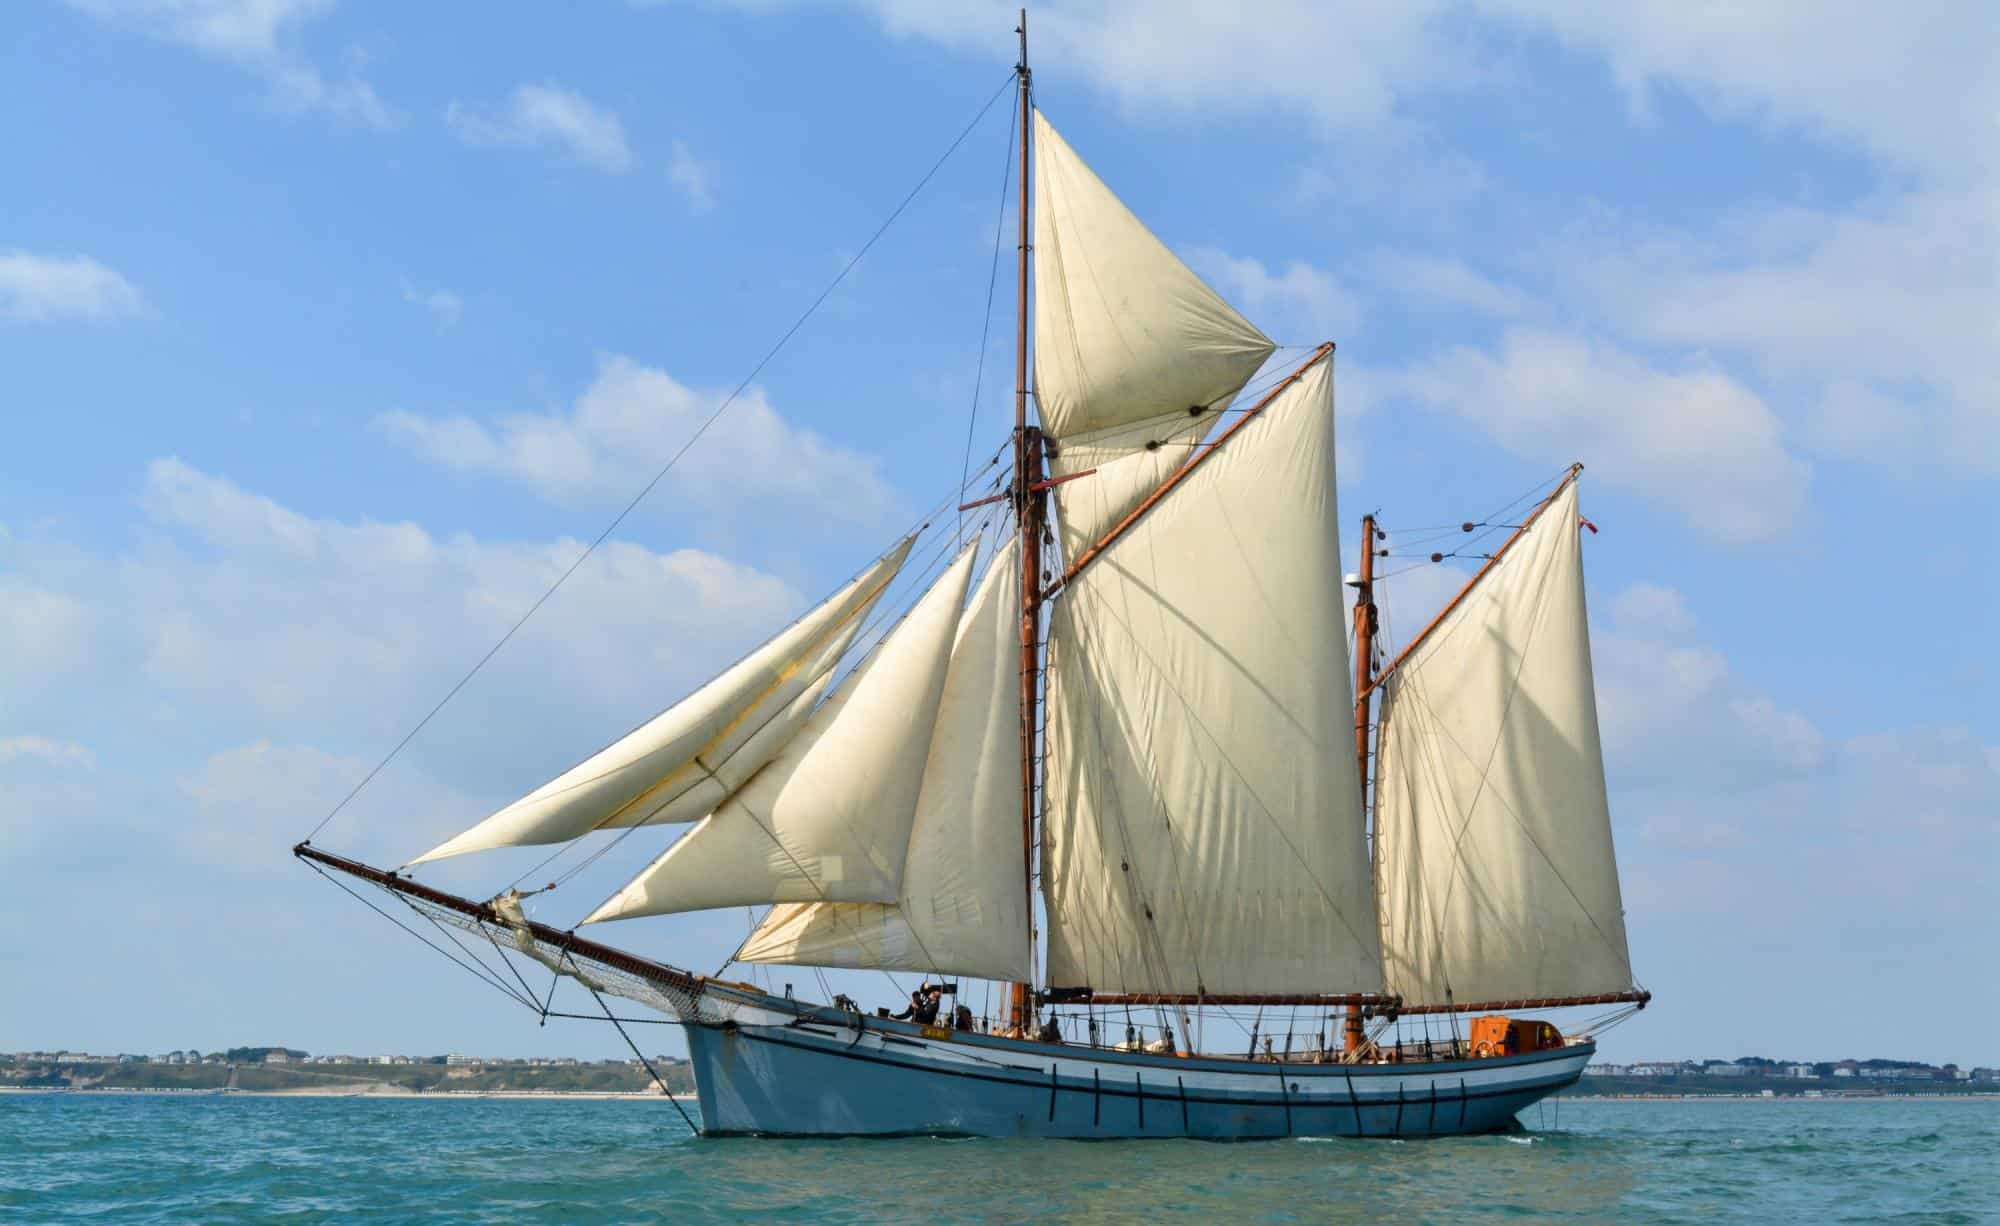 Adventure afloat and Explore Ashore with Classic Sailing in the Isles of Scilly